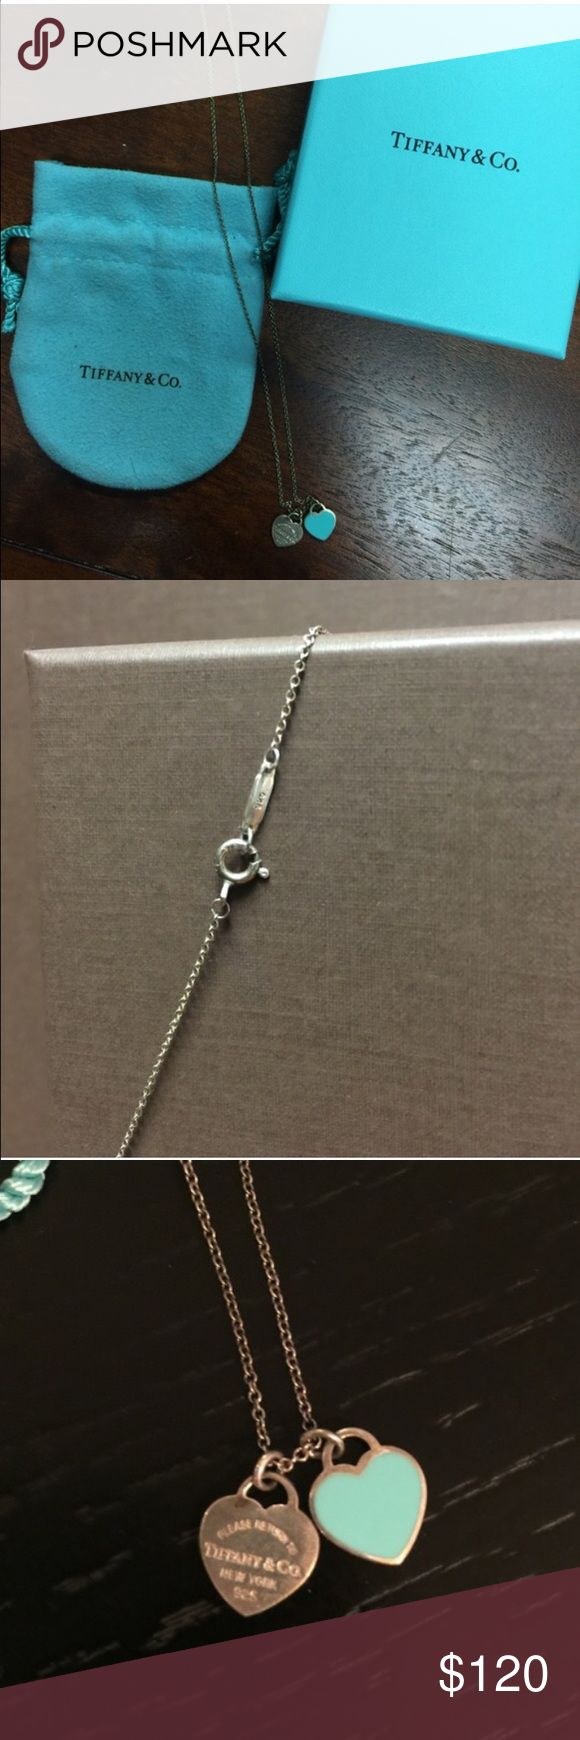 """Tiffany's Heart Necklace 16"""" Tiffany's Heart Necklace 16"""" 100% Authentic. Tiffany & Co. Jewelry Necklaces"""